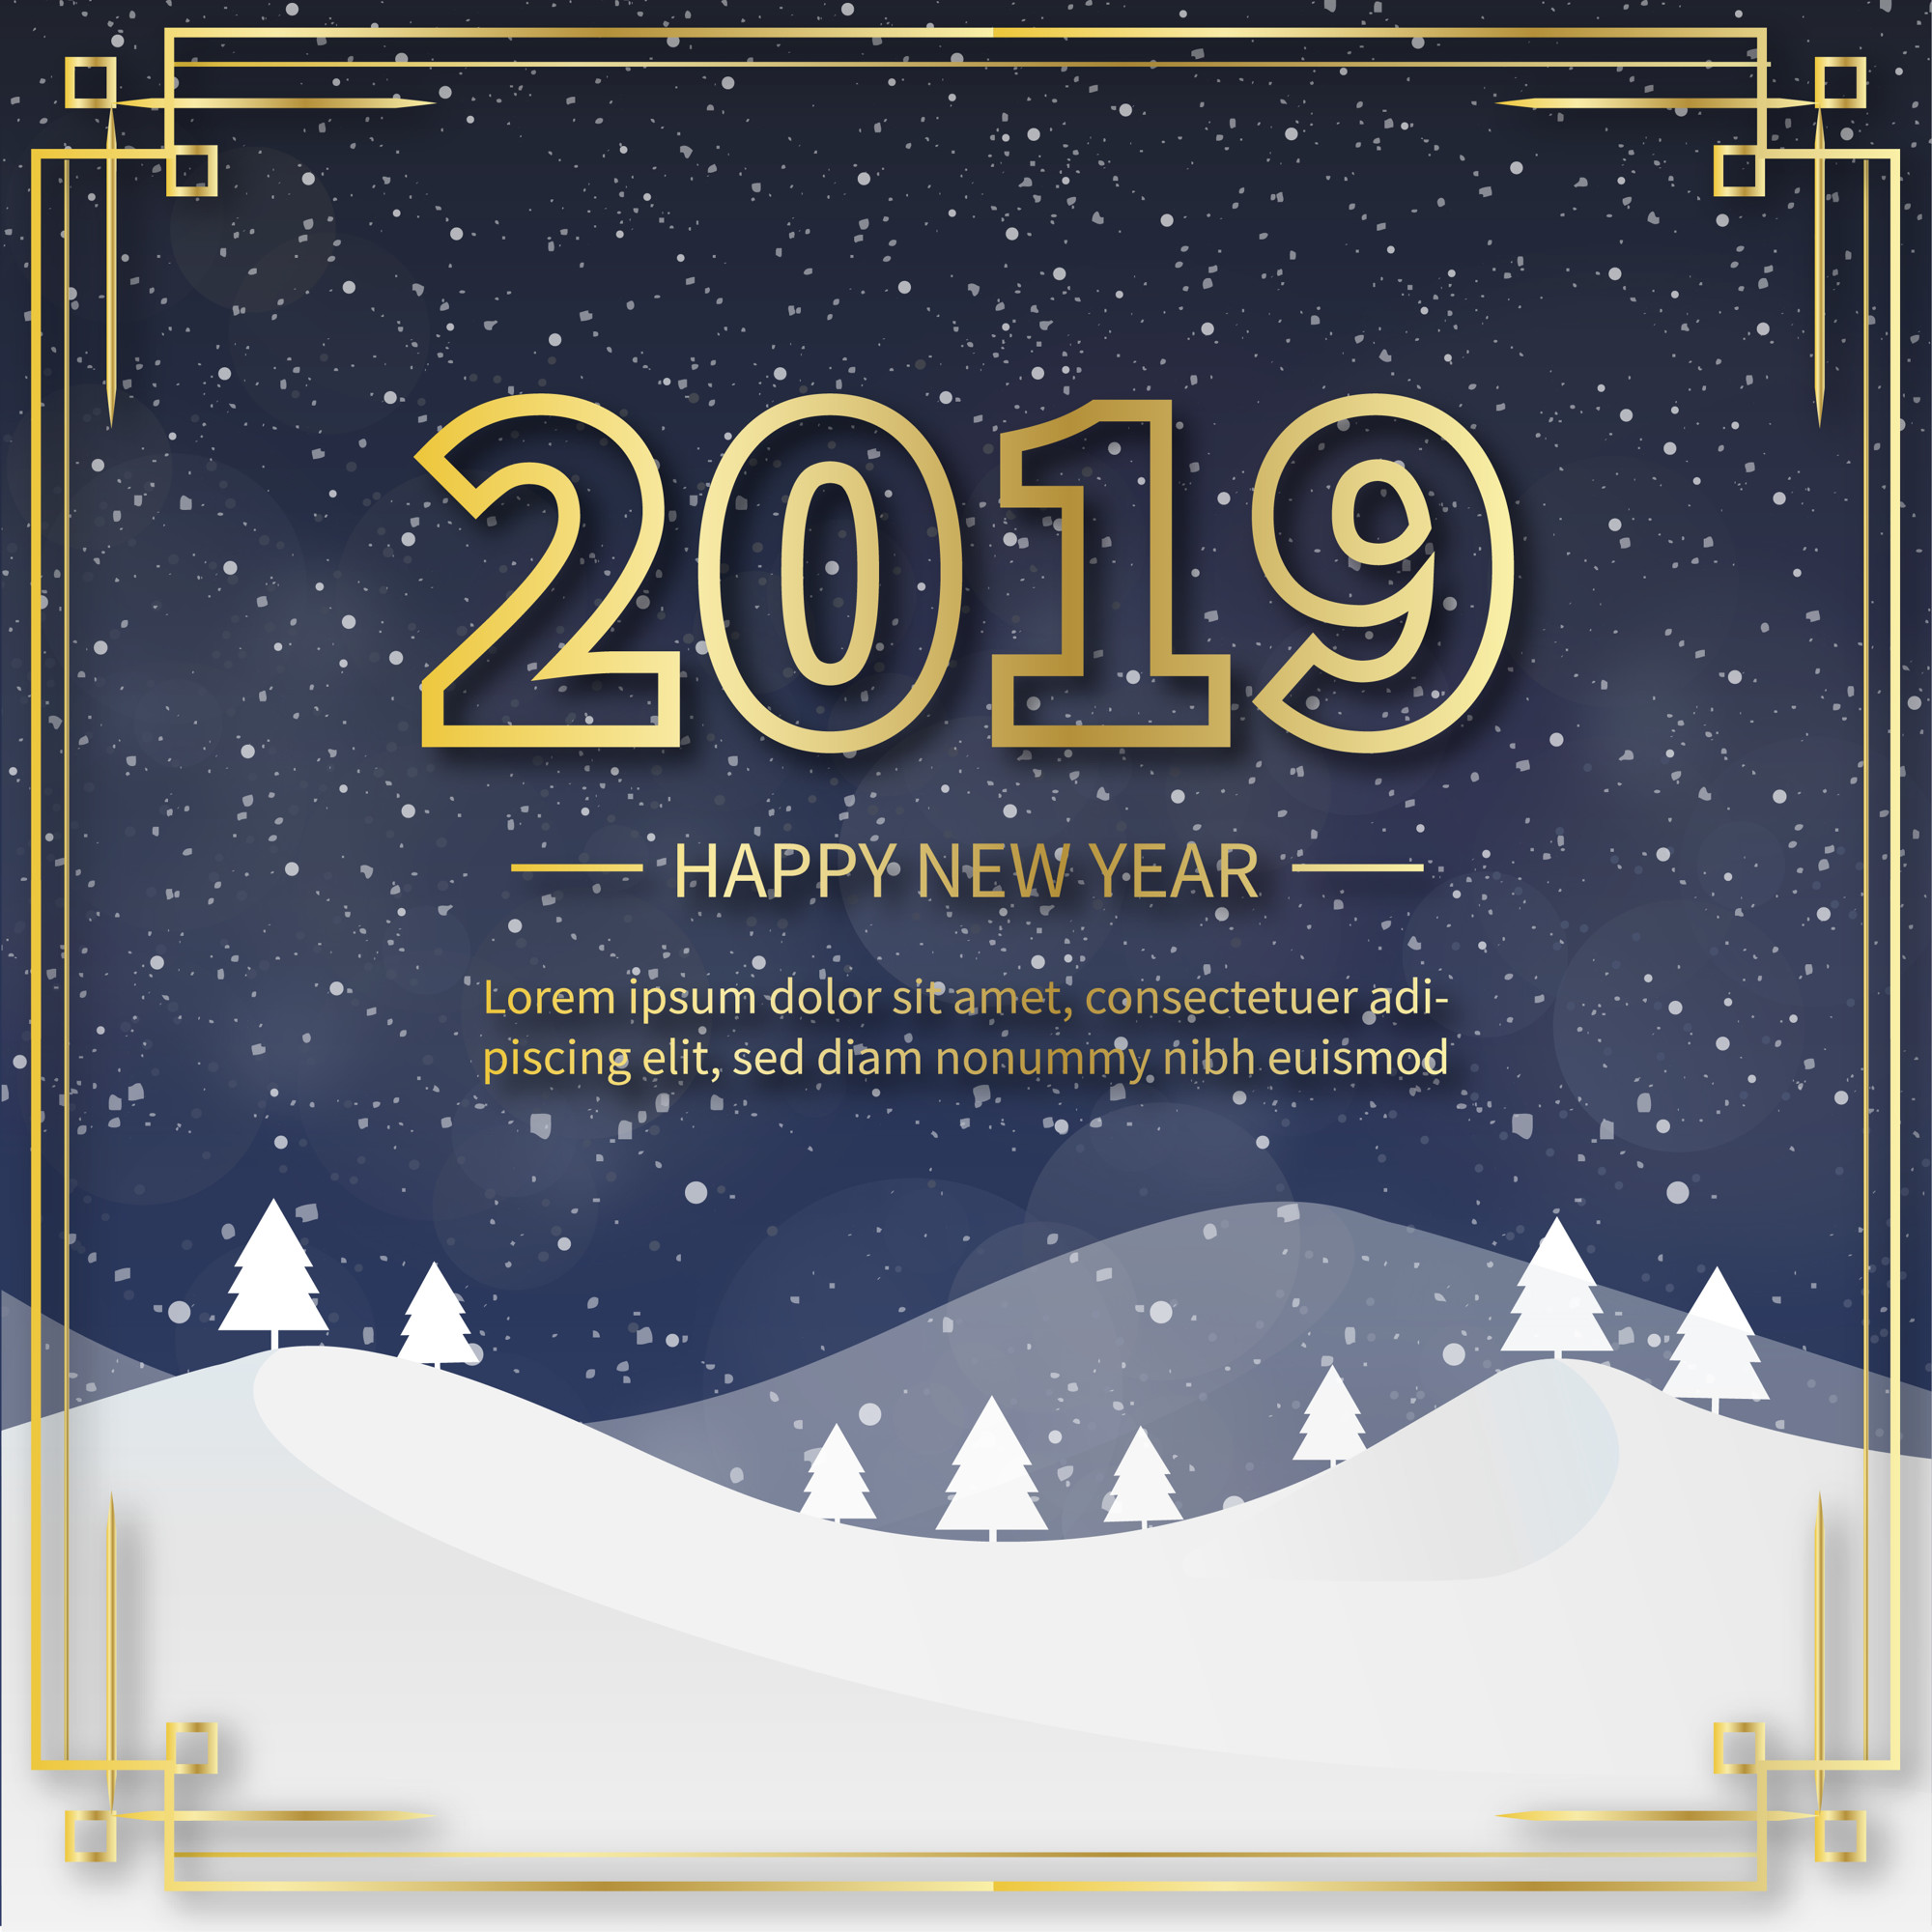 2019 Background with Snowy Landscape